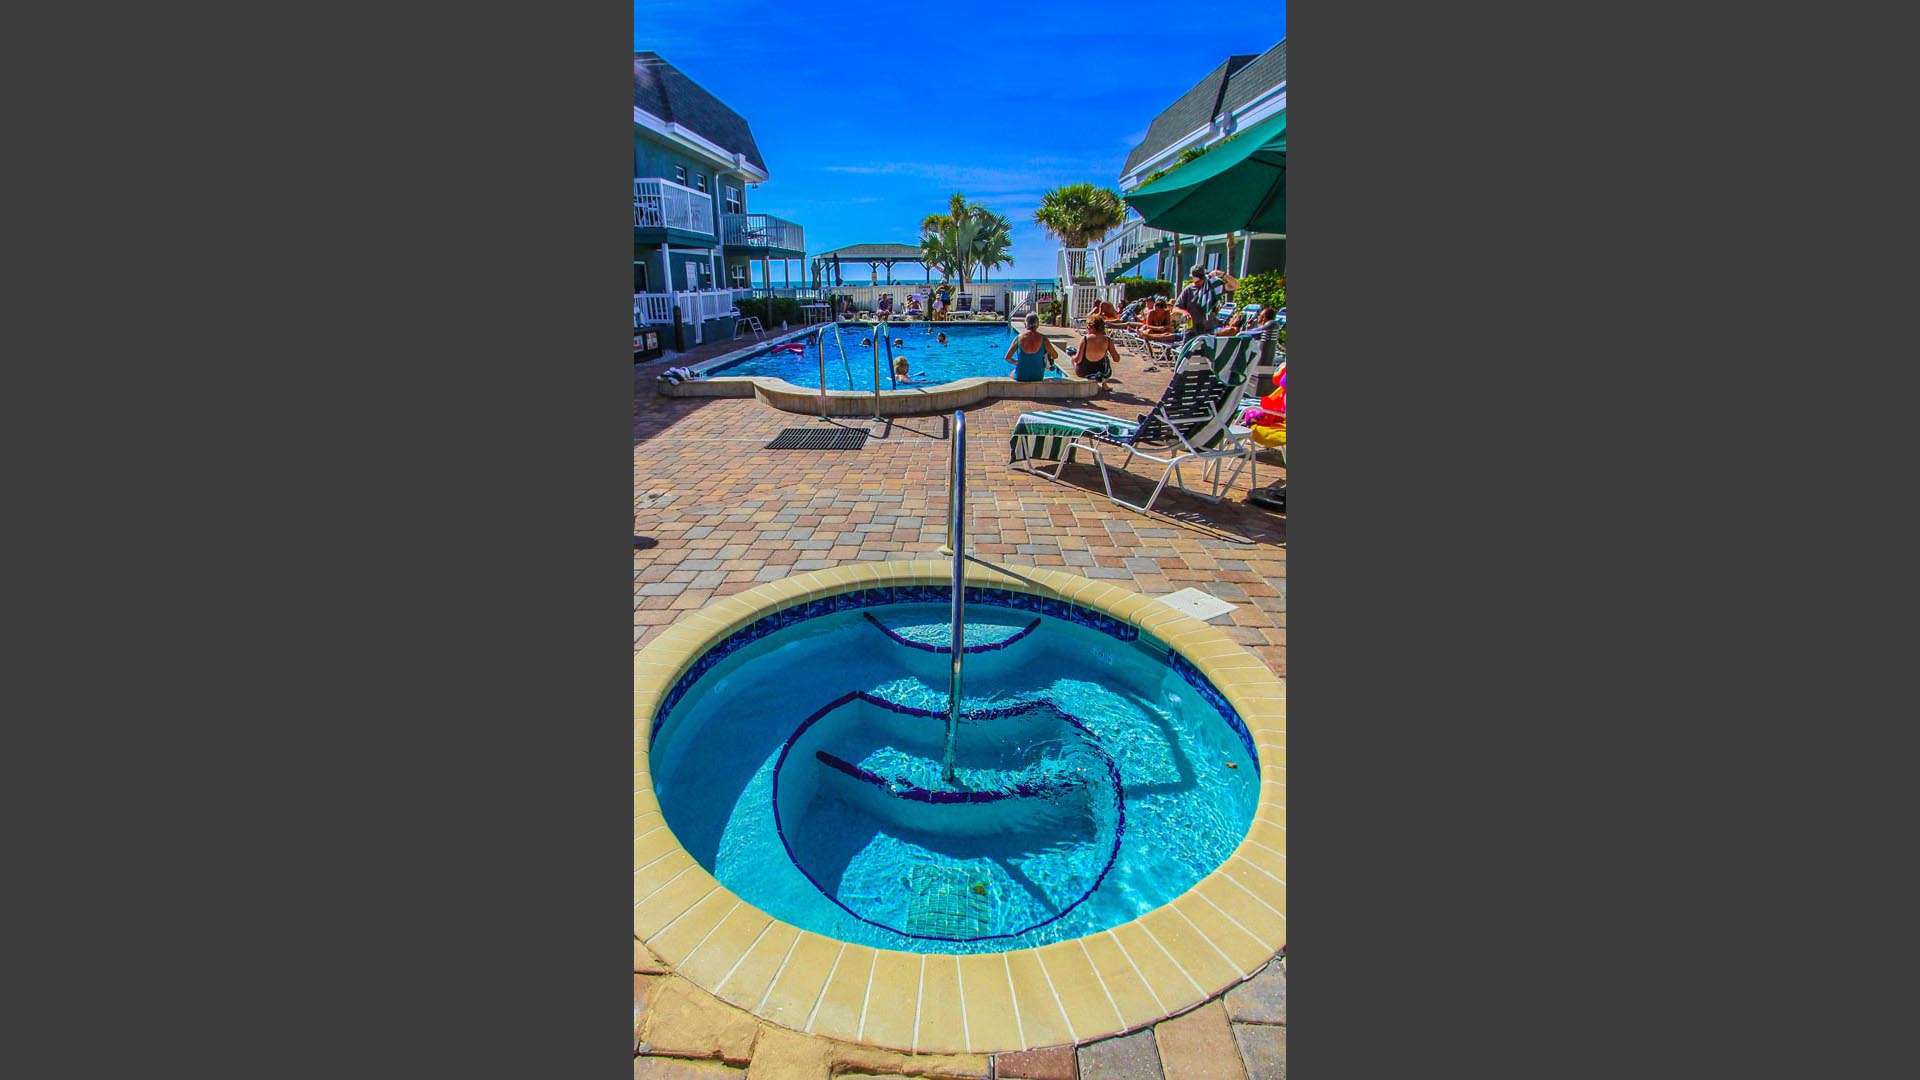 A refreshing view of the outdoor swimming pool and Jacuzzi  at VRI's Mariner Beach Club in St. Pete Beach, Florida.